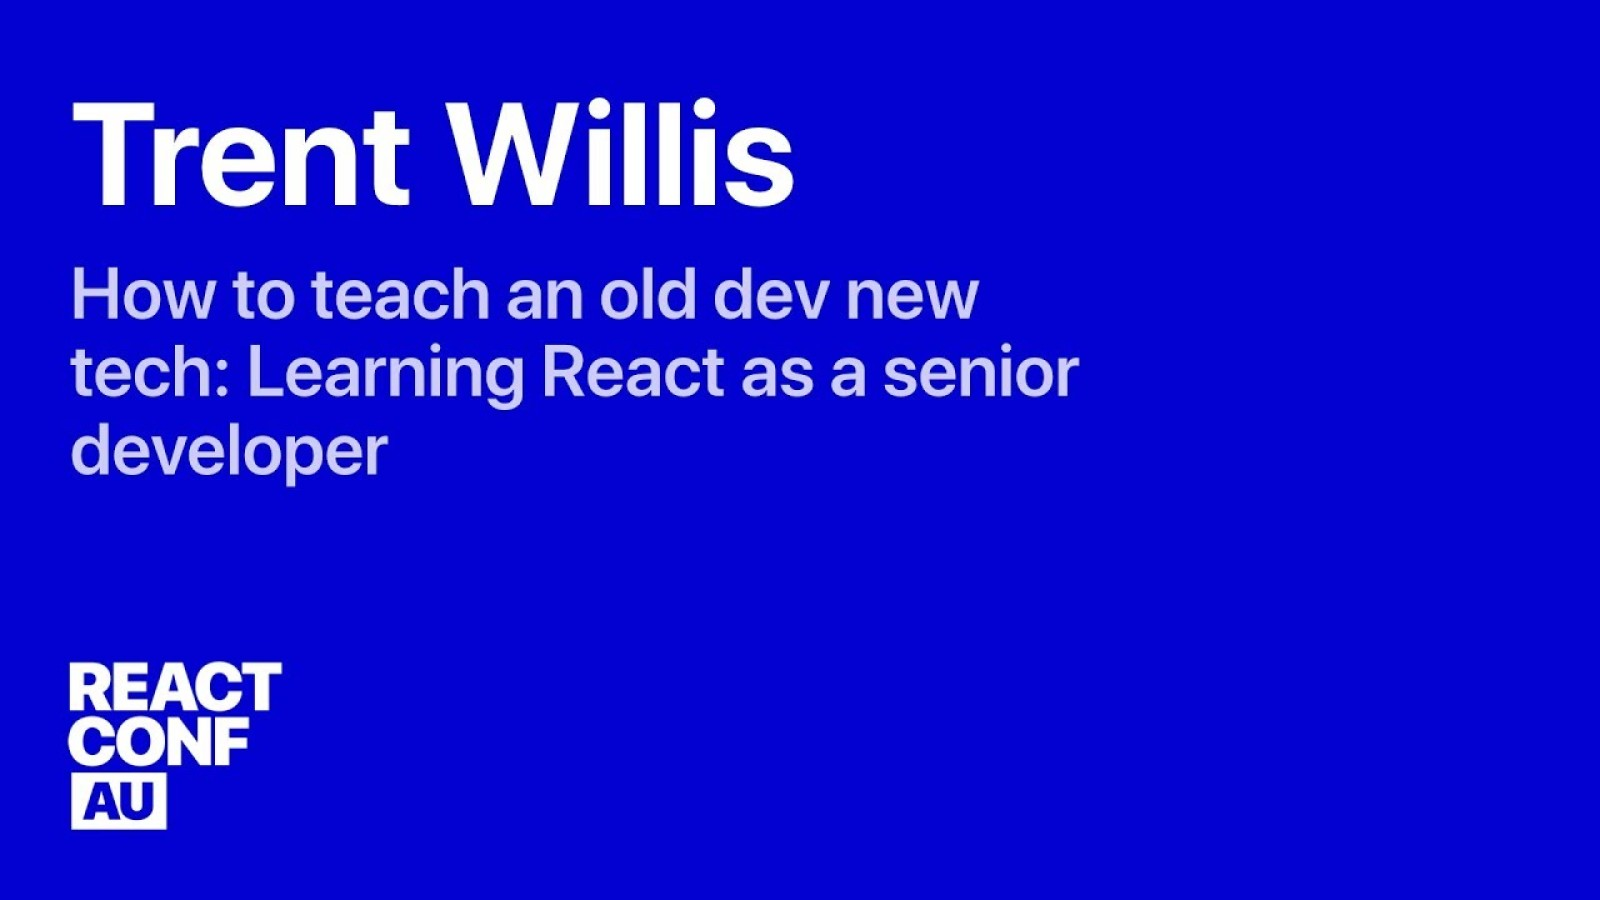 How To Teach An Old Dev New Tech: Learning React as a Senior Developer